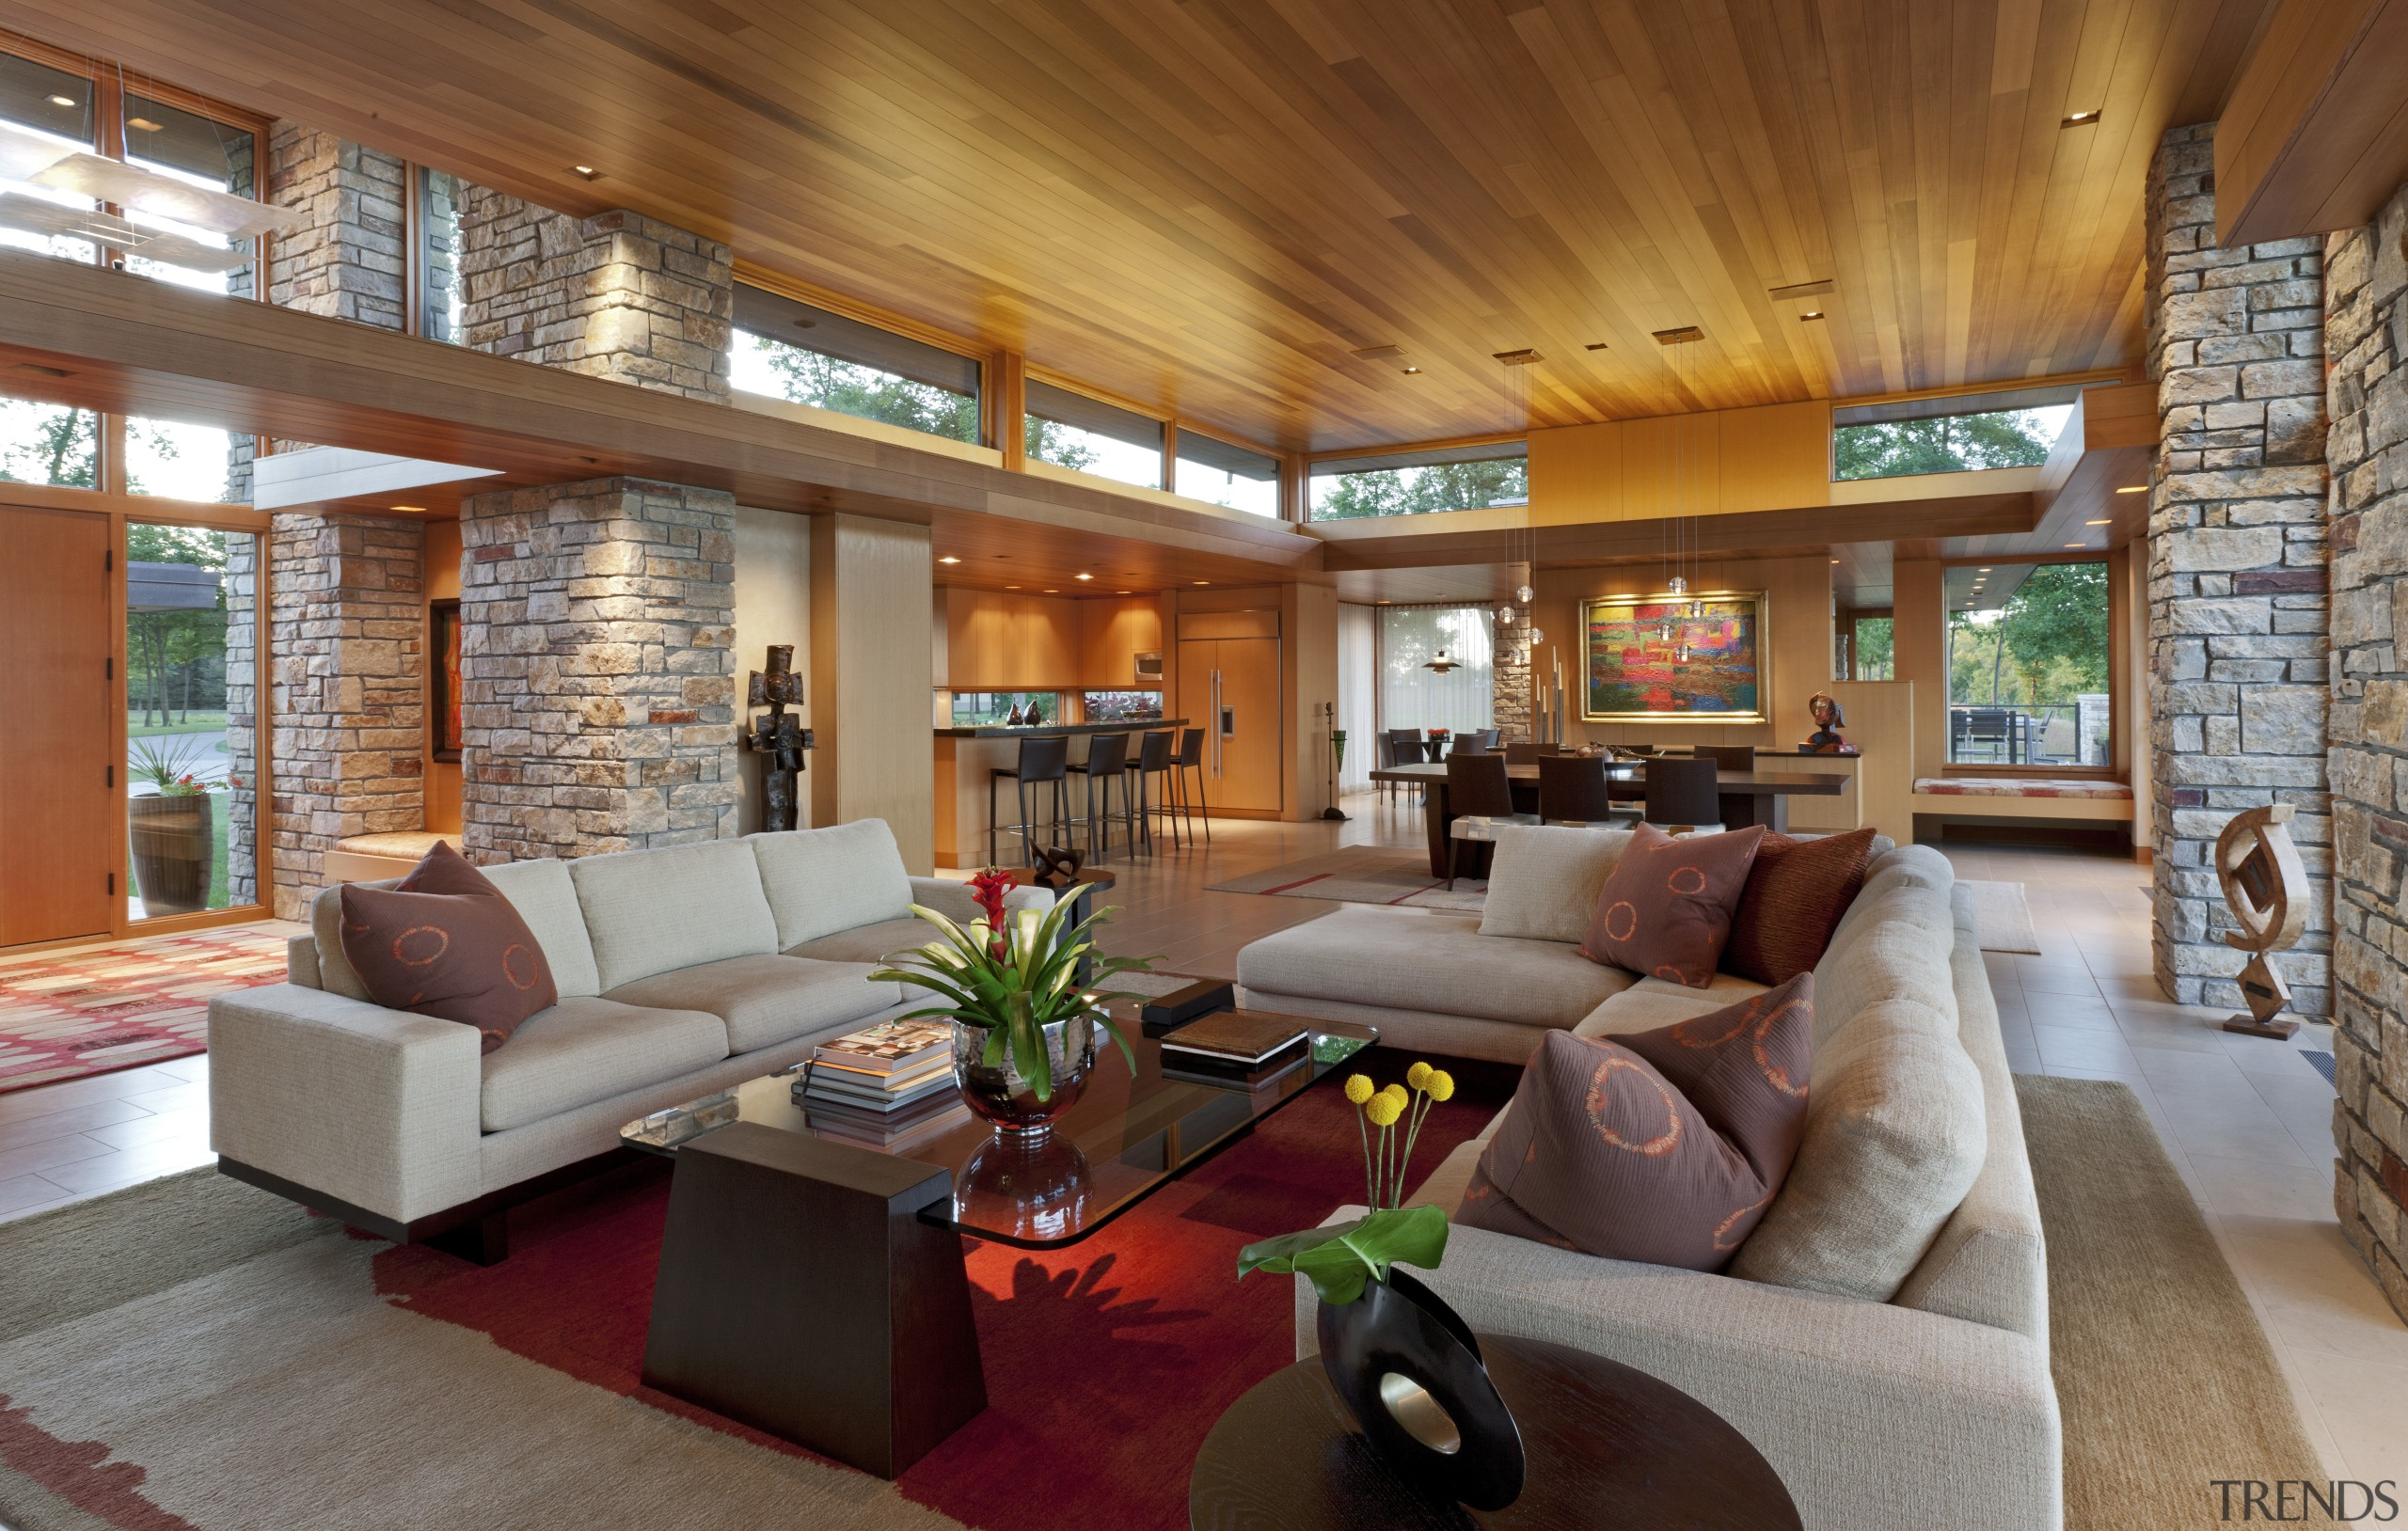 timber roofs, white couches, red rug in centre ceiling, estate, home, house, interior design, living room, lobby, real estate, room, brown, gray